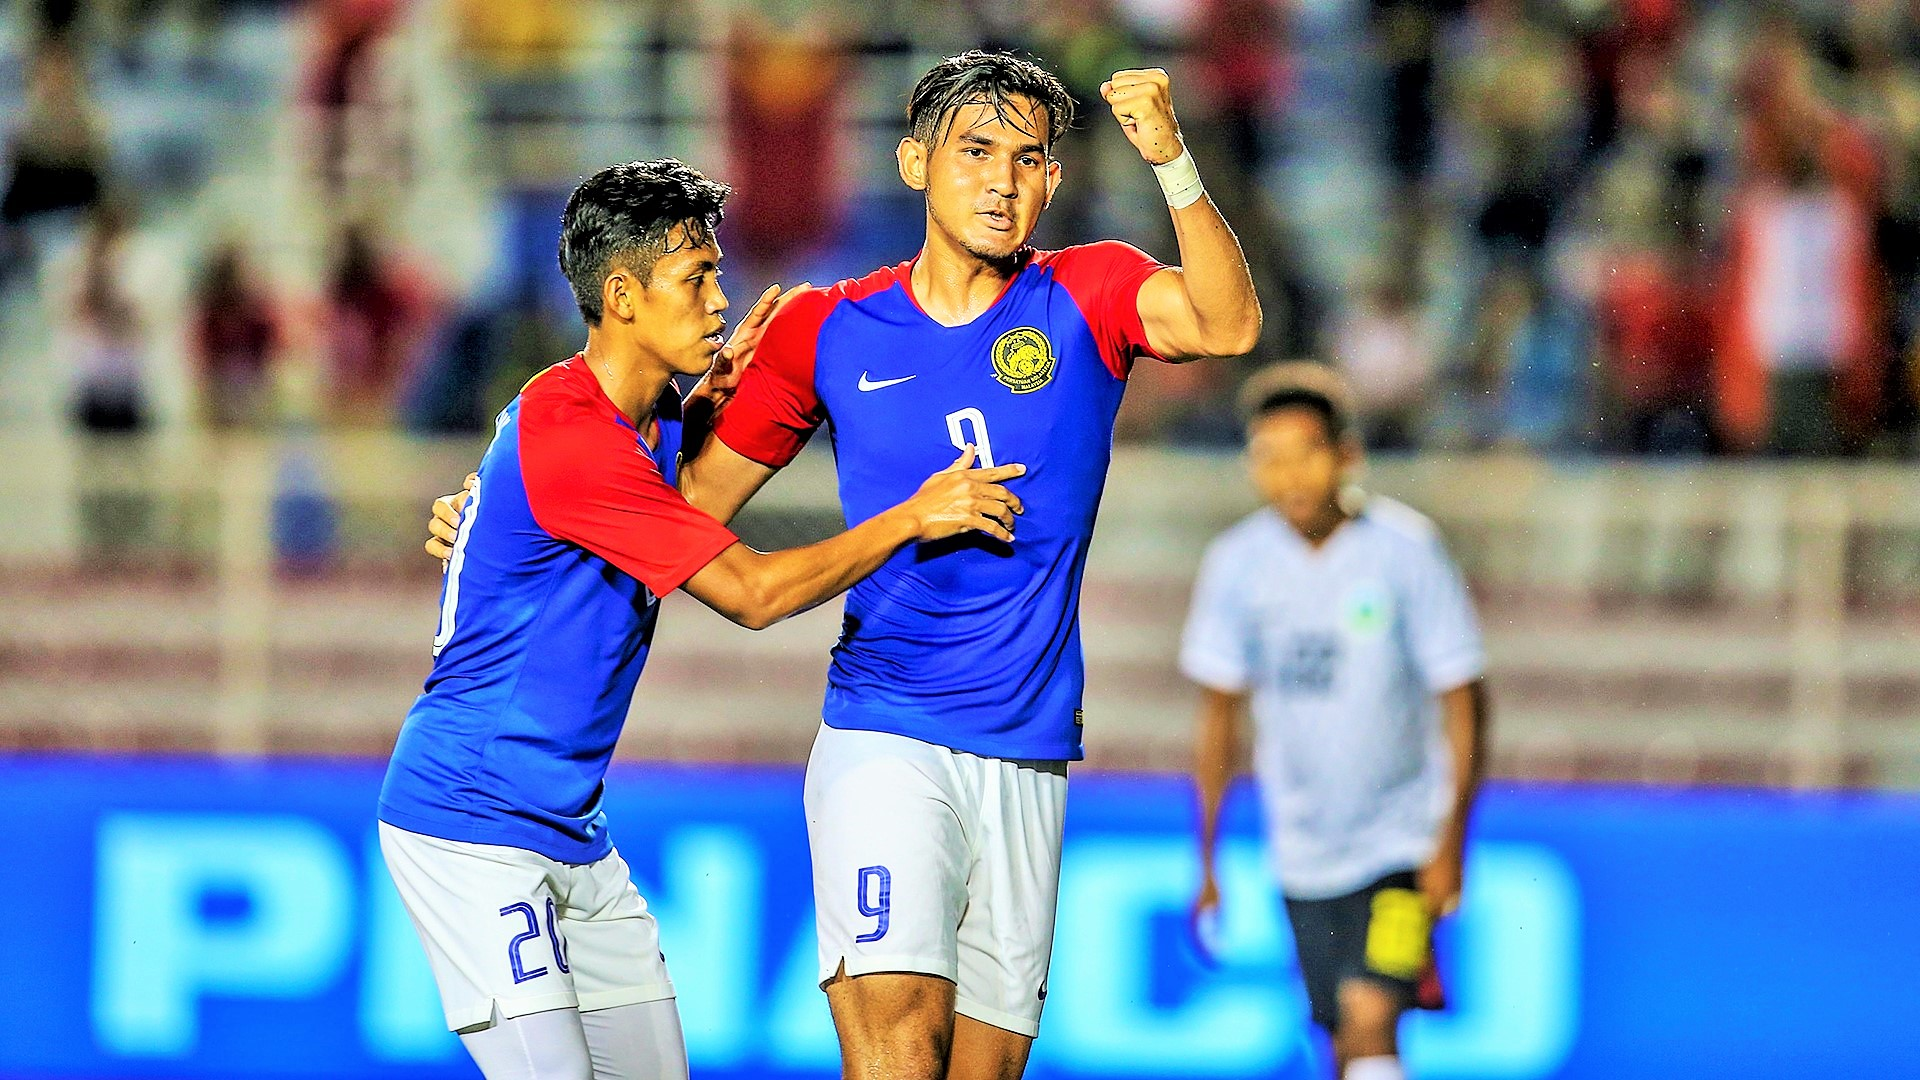 How has ex-JDT starlet Hadi Fayyadh fared in Japan so far?